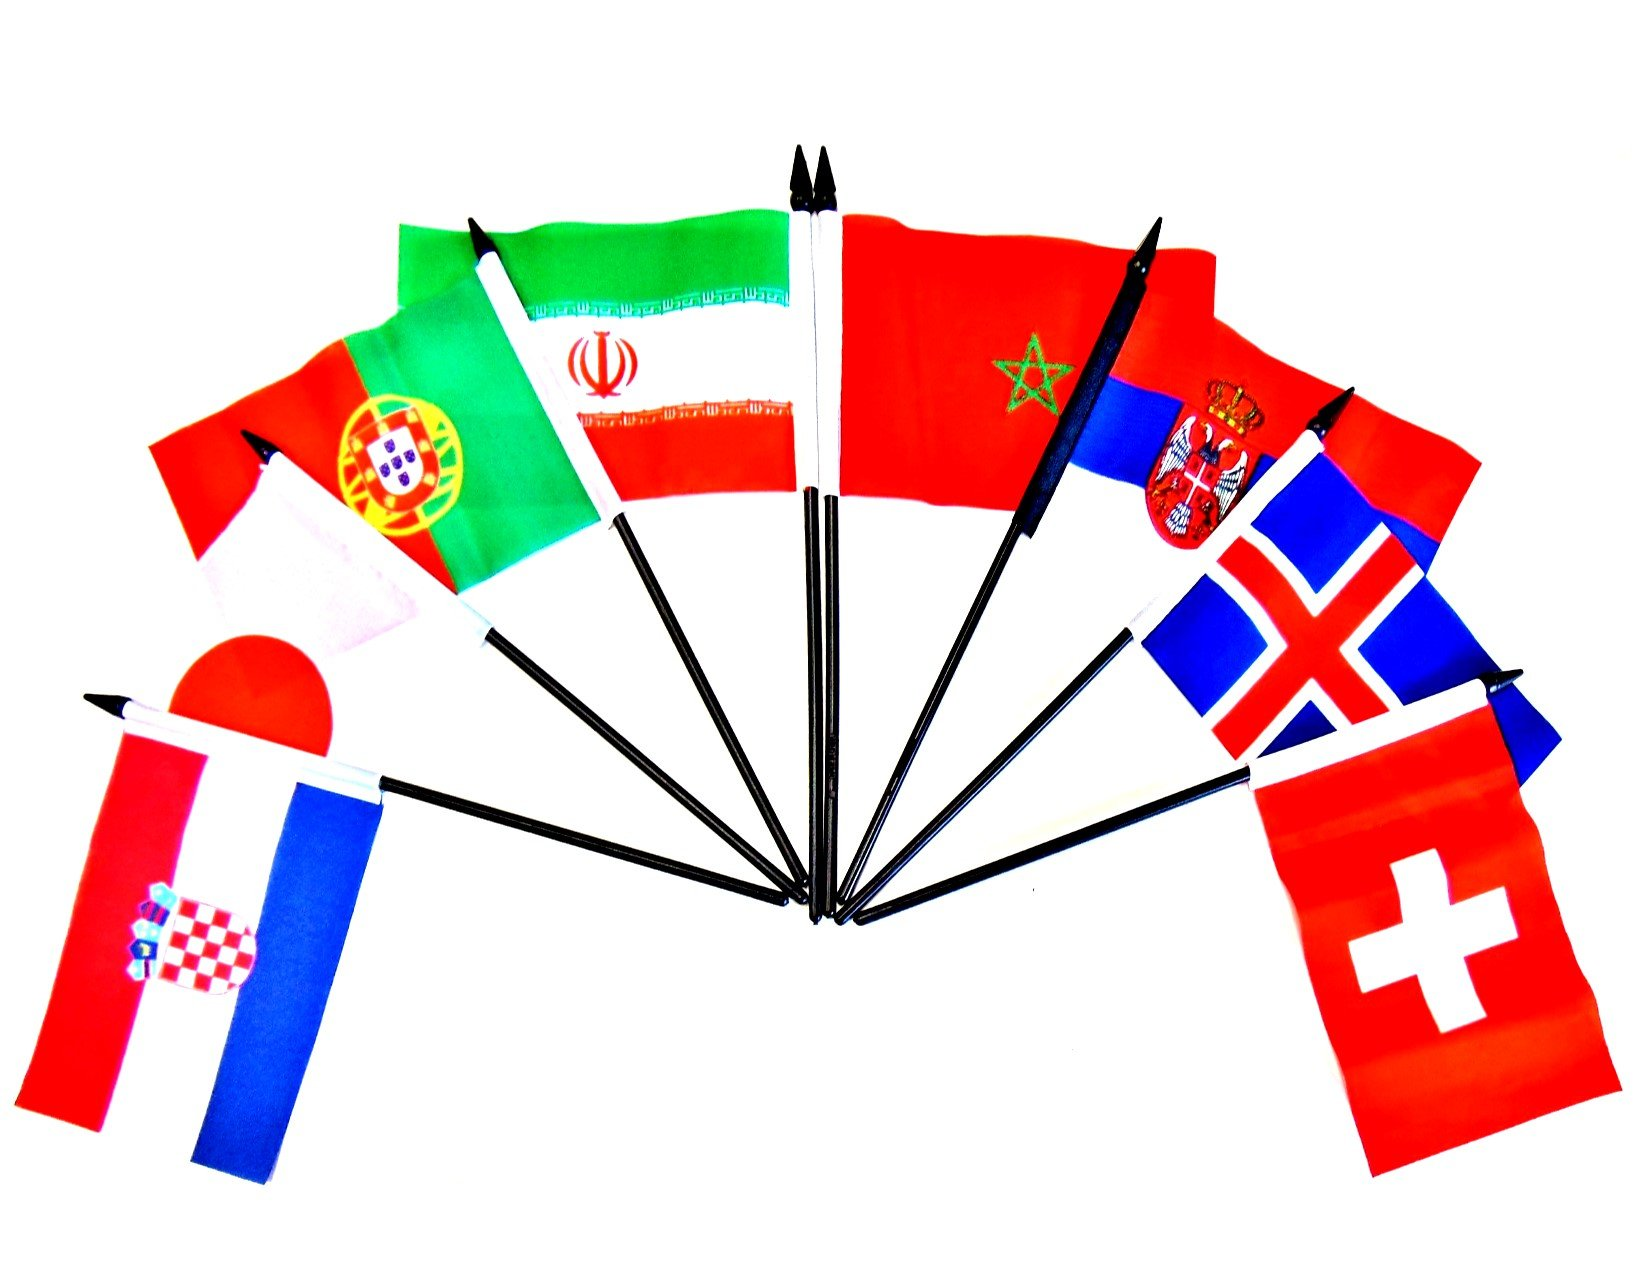 WORLD CUP 2018 SOCCER FLAGS 2018- SET of 32 Polyester 4''x6'' Flags, One Flag for Each Team Competing For the Cup, 4x6 Miniature Desk & Table Flags, Small Mini Stick Flags by World Flags Direct (Image #4)